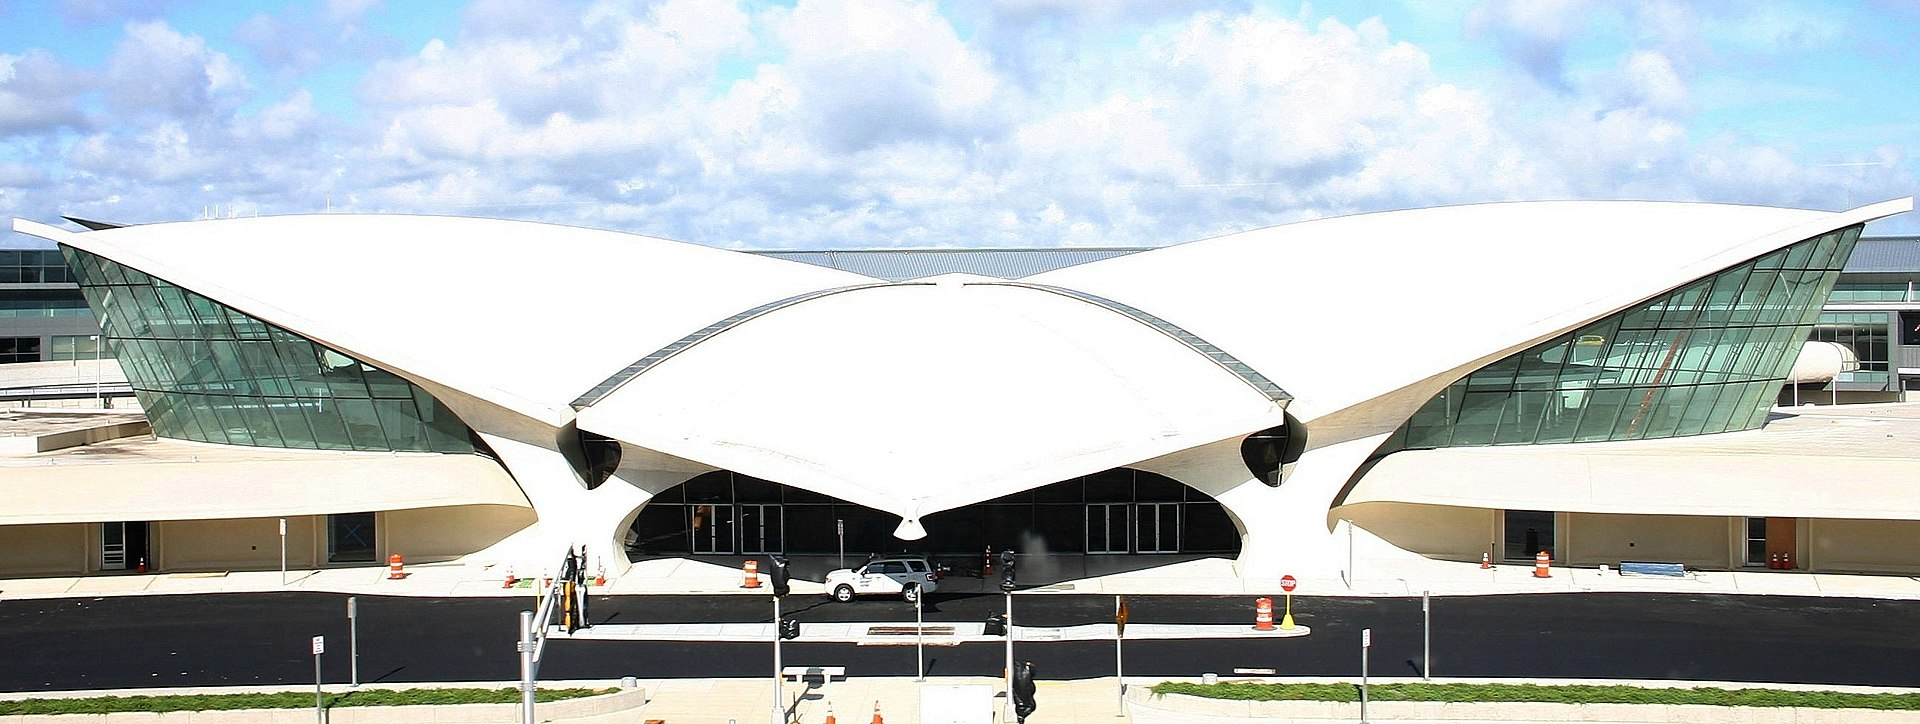 https://upload.wikimedia.org/wikipedia/commons/thumb/6/64/Ehemaliges_TWA-Terminal_am_John_F._Kennedy_International_Airport_in_New_York.JPG/1920px-Ehemaliges_TWA-Terminal_am_John_F._Kennedy_International_Airport_in_New_York.JPG